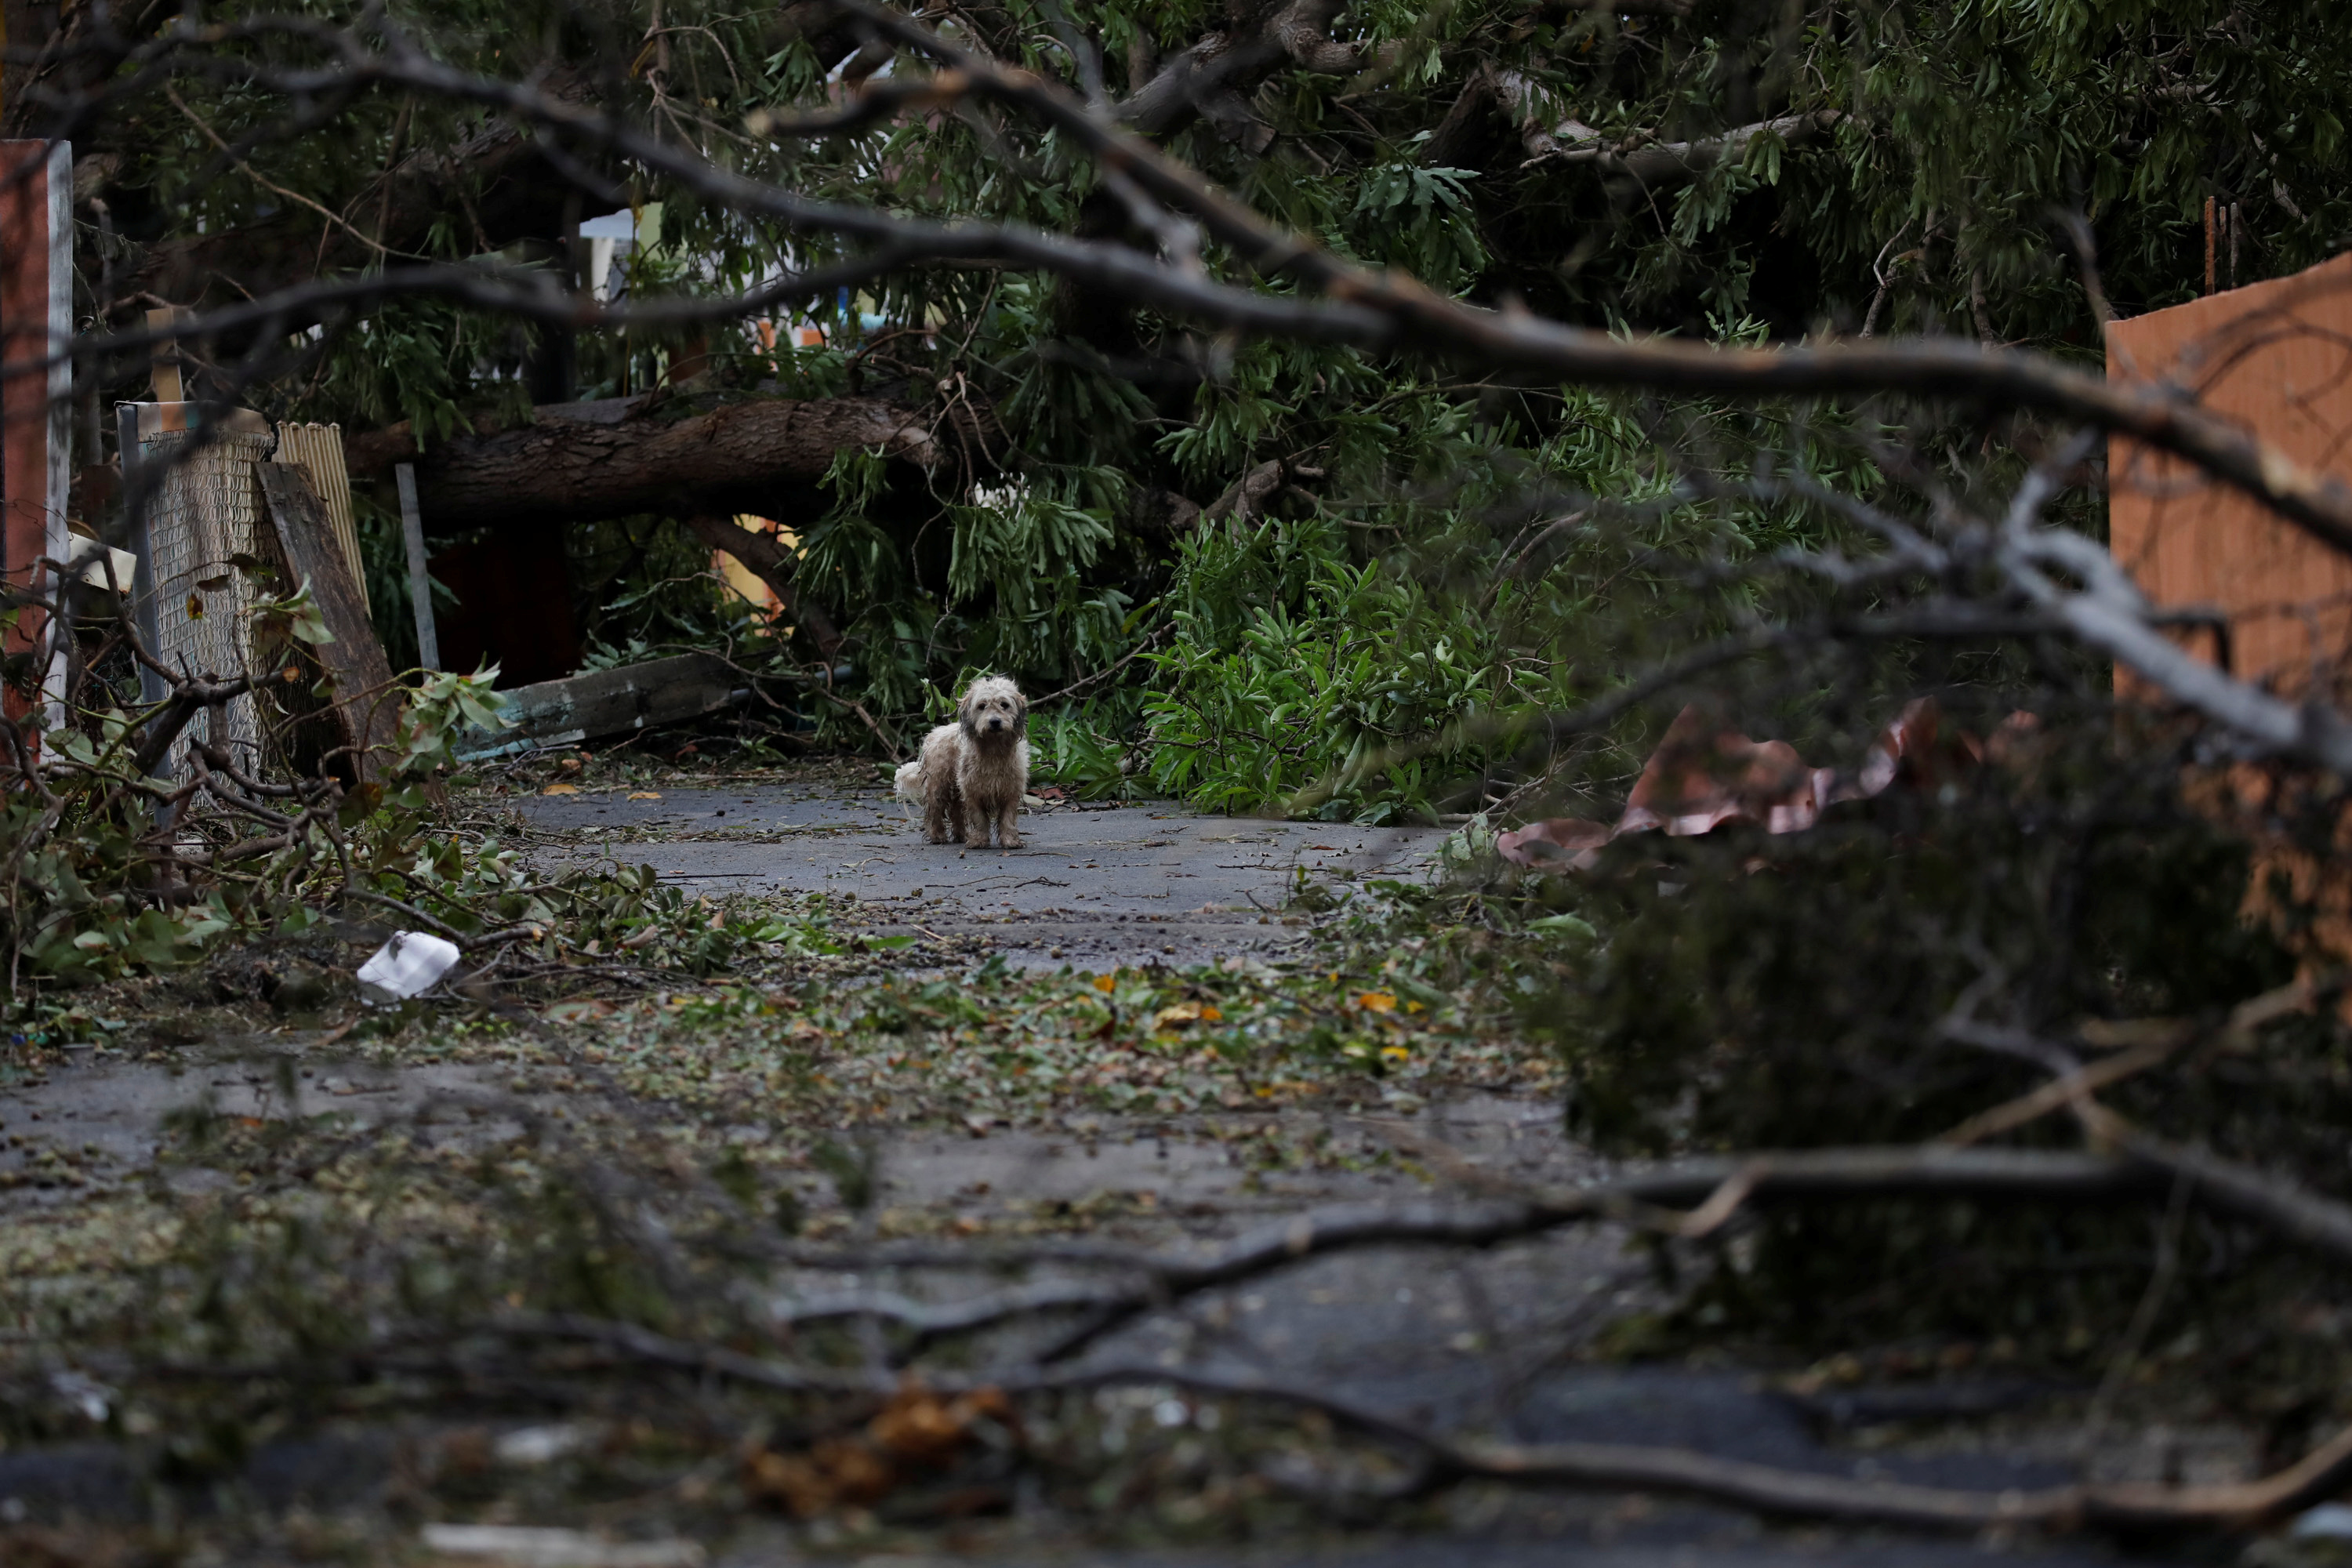 A dog stands next to fallen trees and damaged houses after the area was hit by Hurricane Maria in Salinas, Puerto Rico September 21, 2017. REUTERS/Carlos Garcia Rawlins